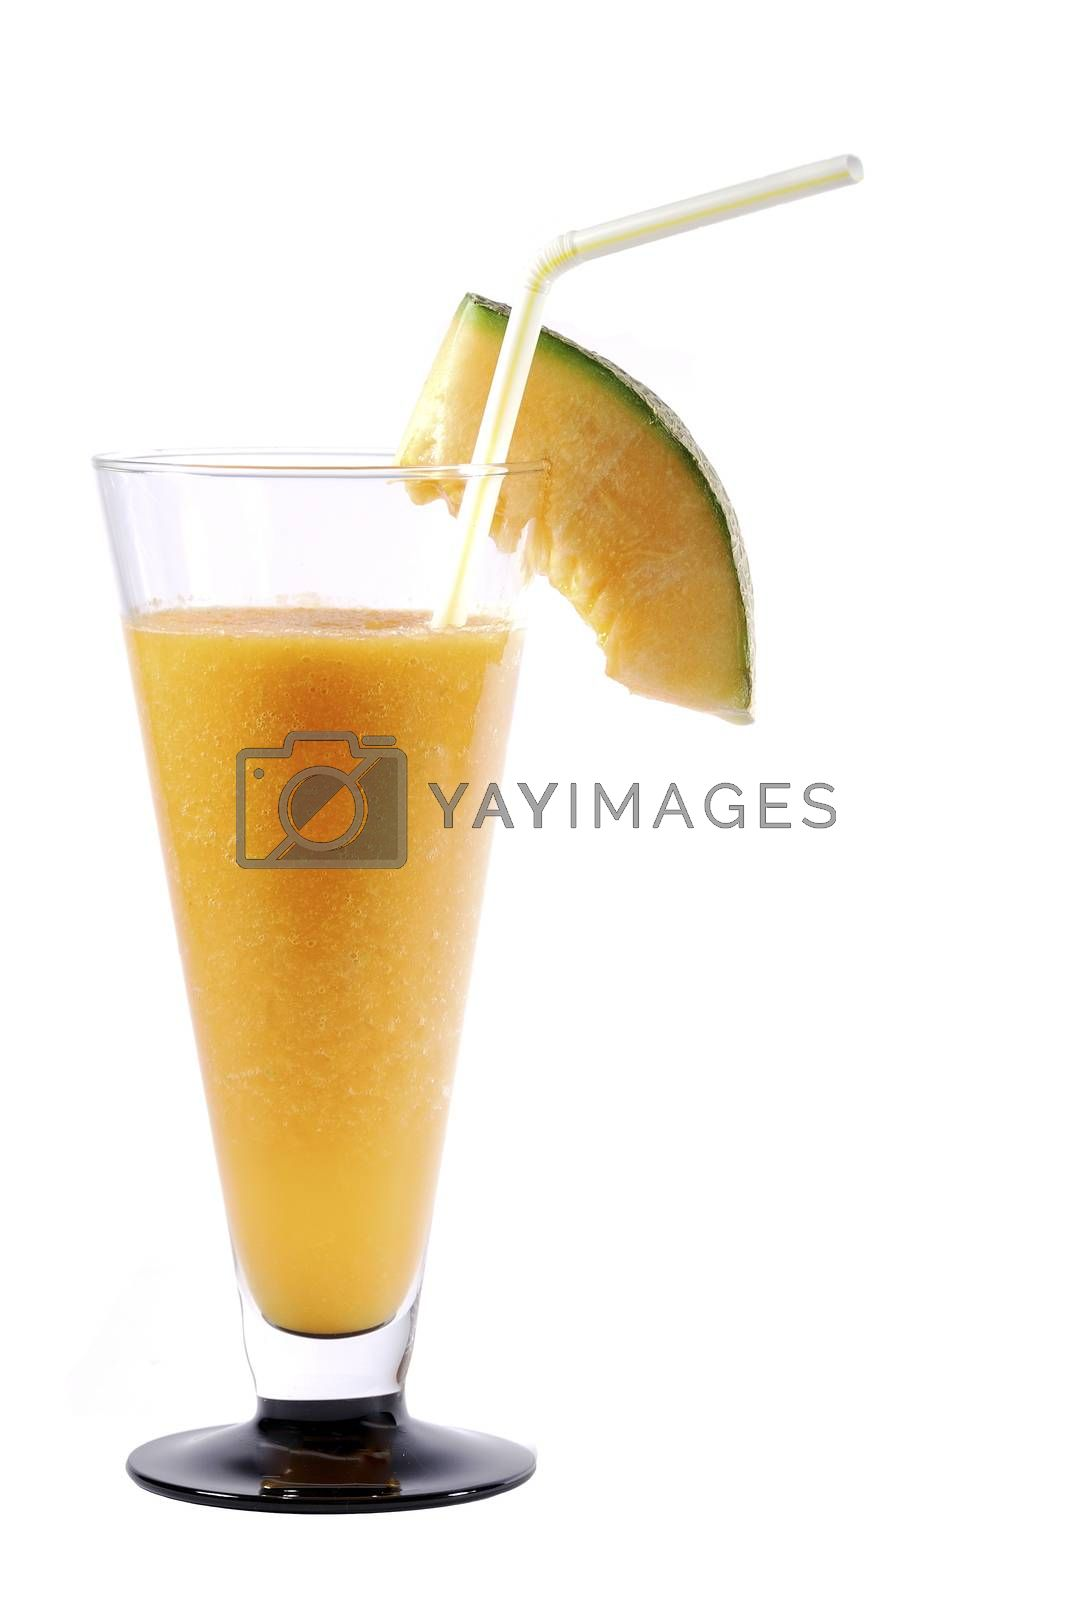 yellow juicy melons healthy ginger smoothie with drinking straw large view portrait on white background